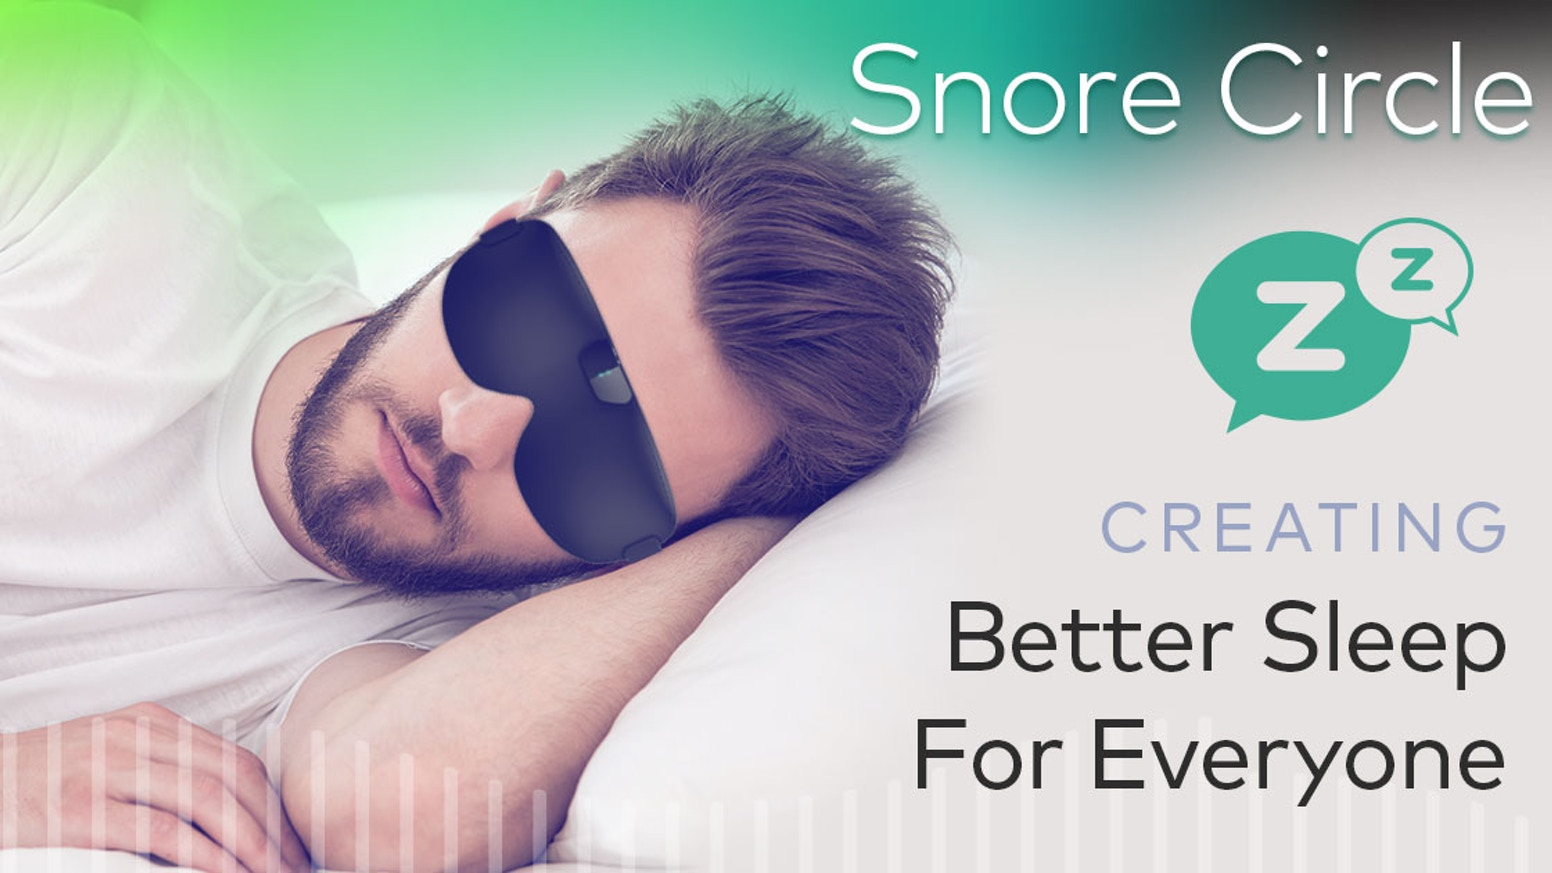 The most effective solution to stop the snoring and make you sleep better. Smart, compact, and super comfortable!